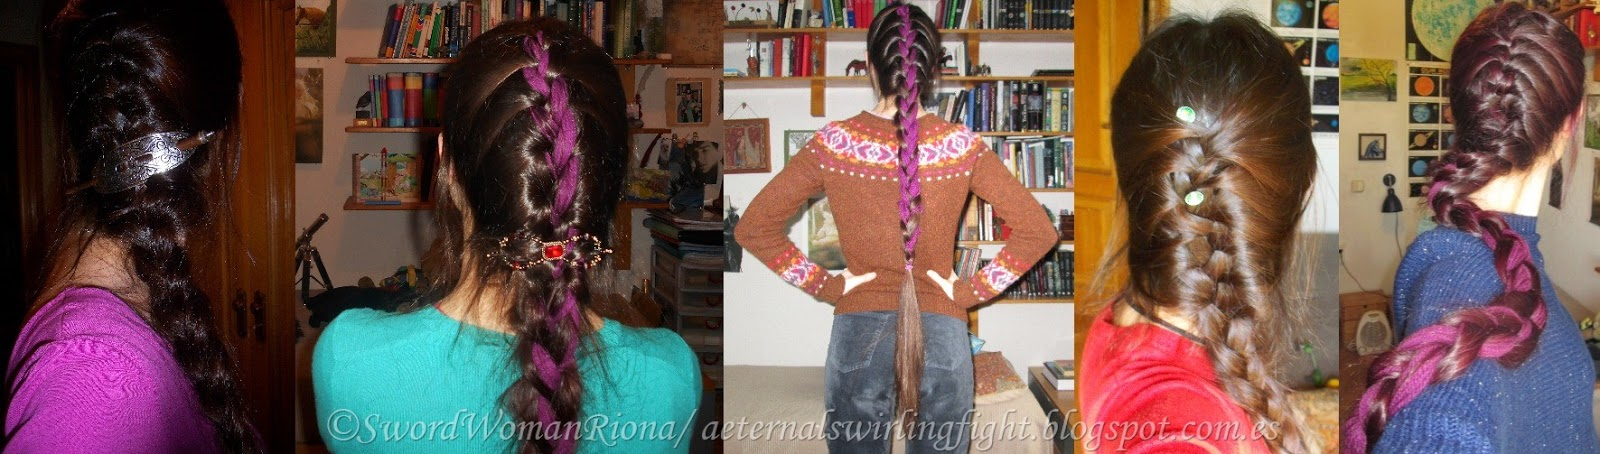 A Sword-woman's Natural Hair blog: Hairstyles - French braids